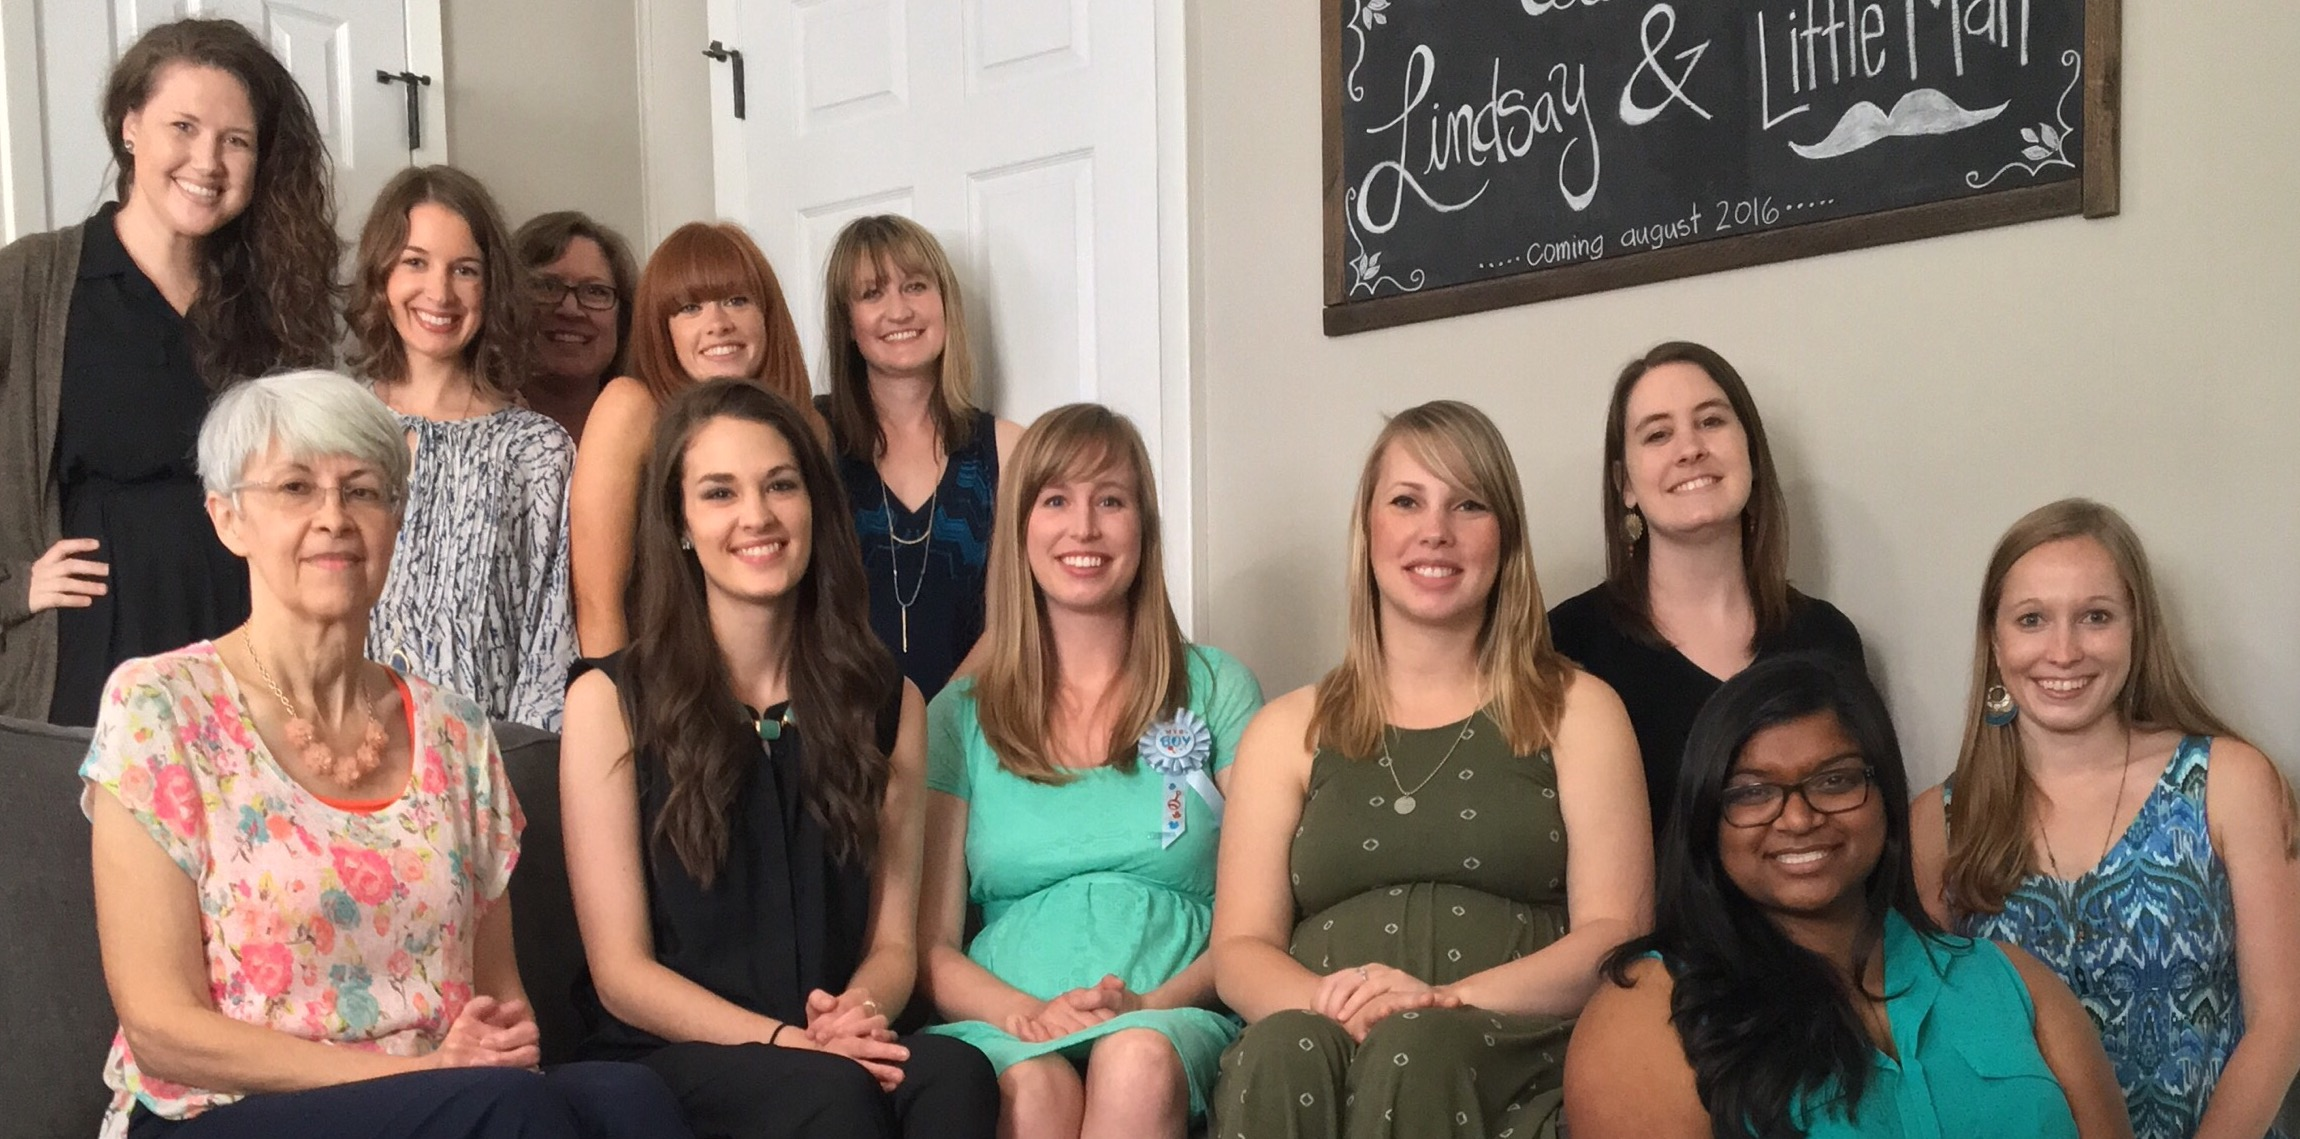 Baby Shower Group Pic